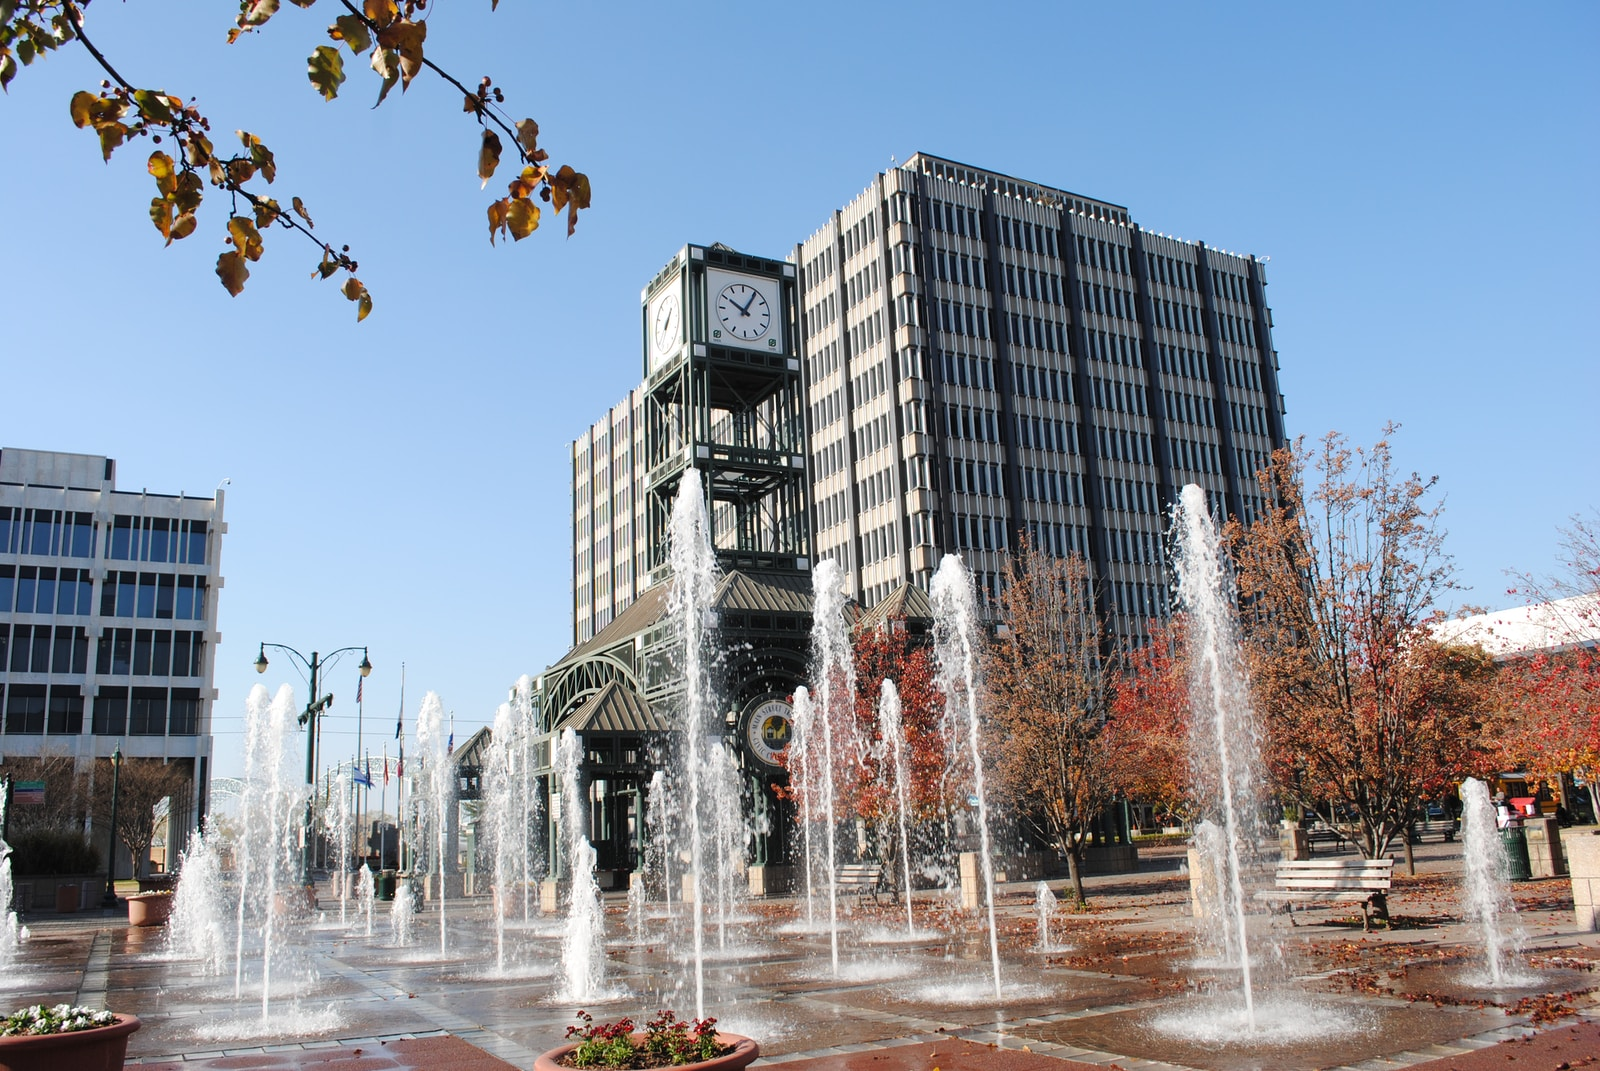 water fountain in front of building during daytime